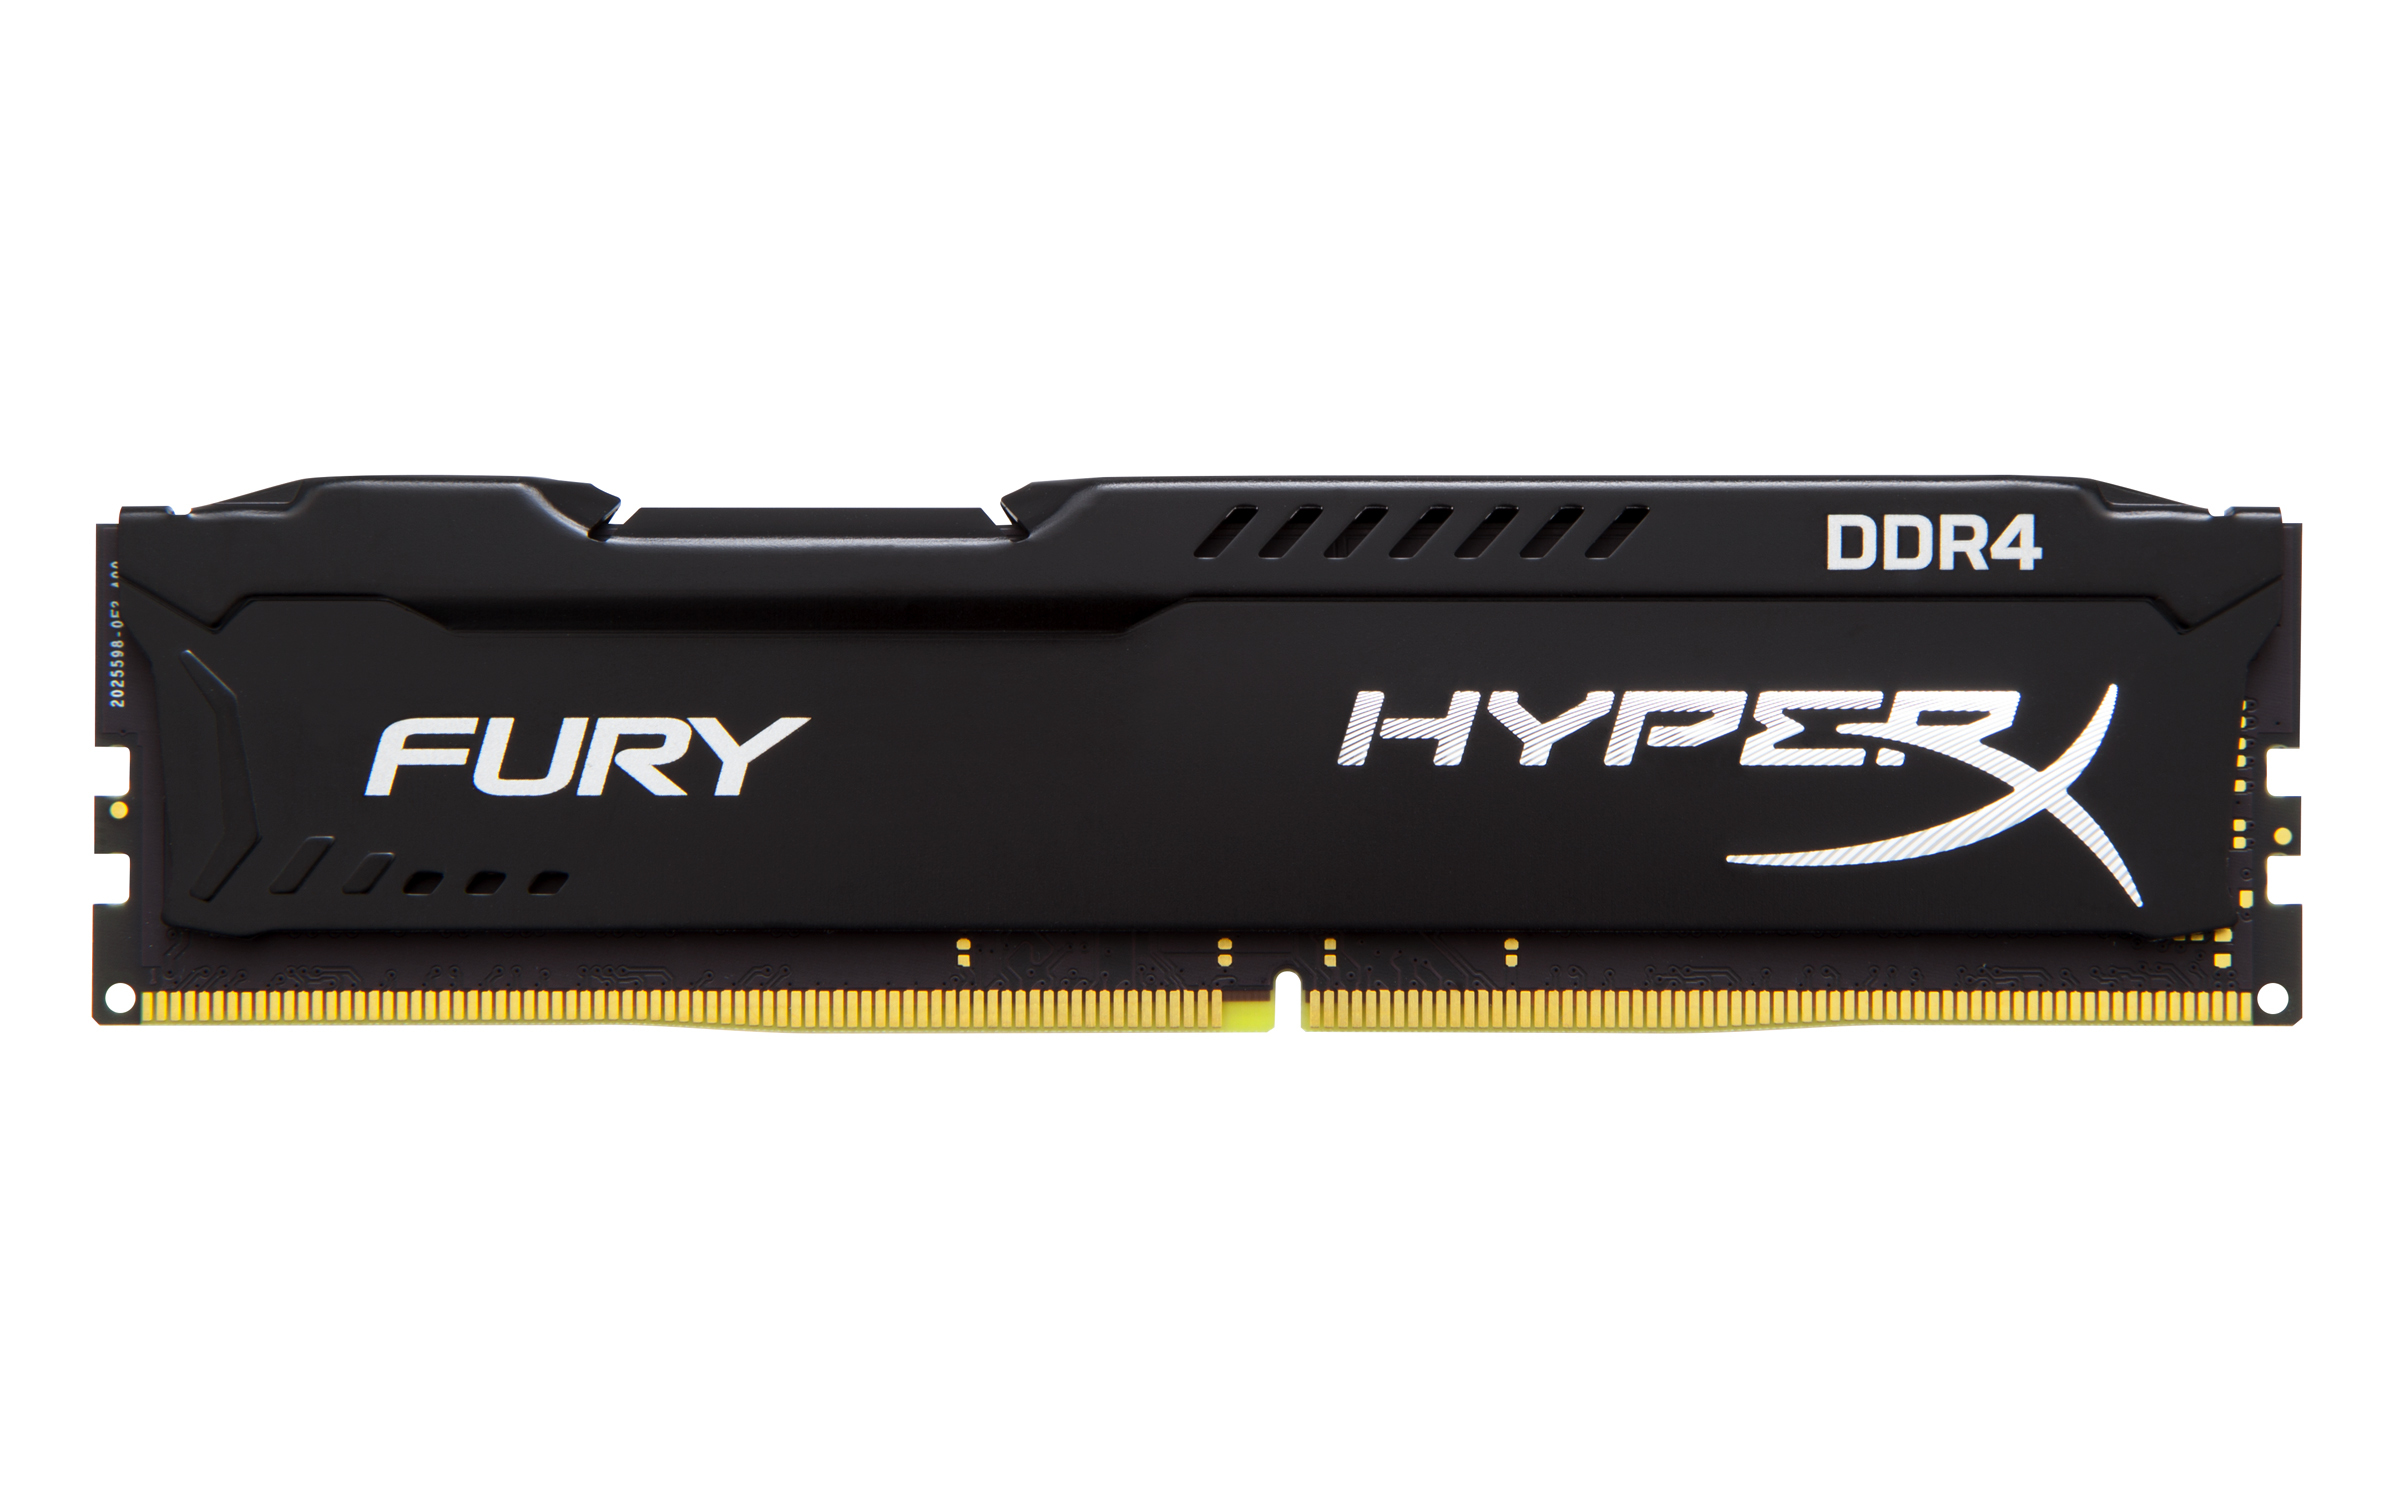 Ram Kingston 8GB 2666Mhz DDR4 CL15 DIMM Fury Hyper